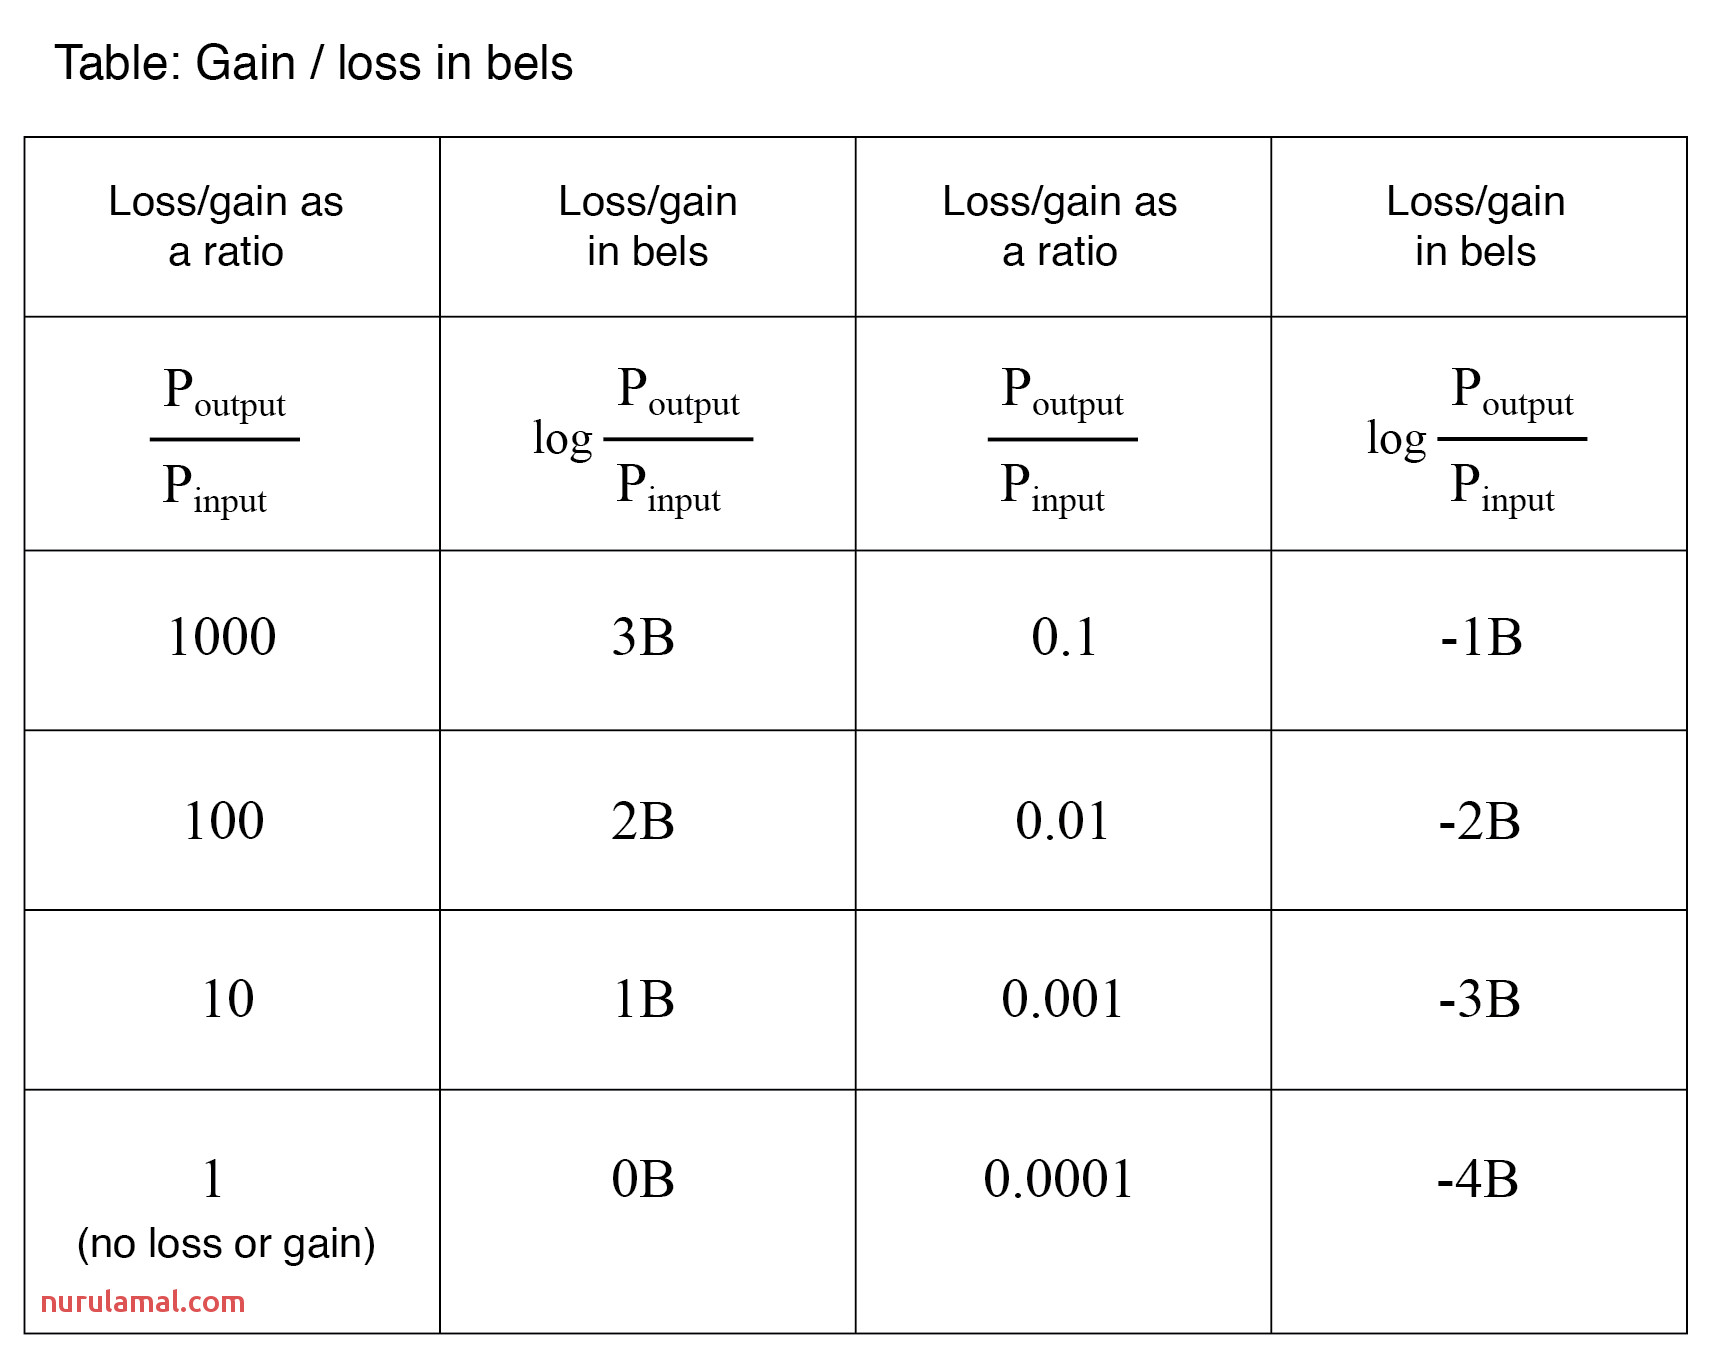 power losses and gains in bels table1